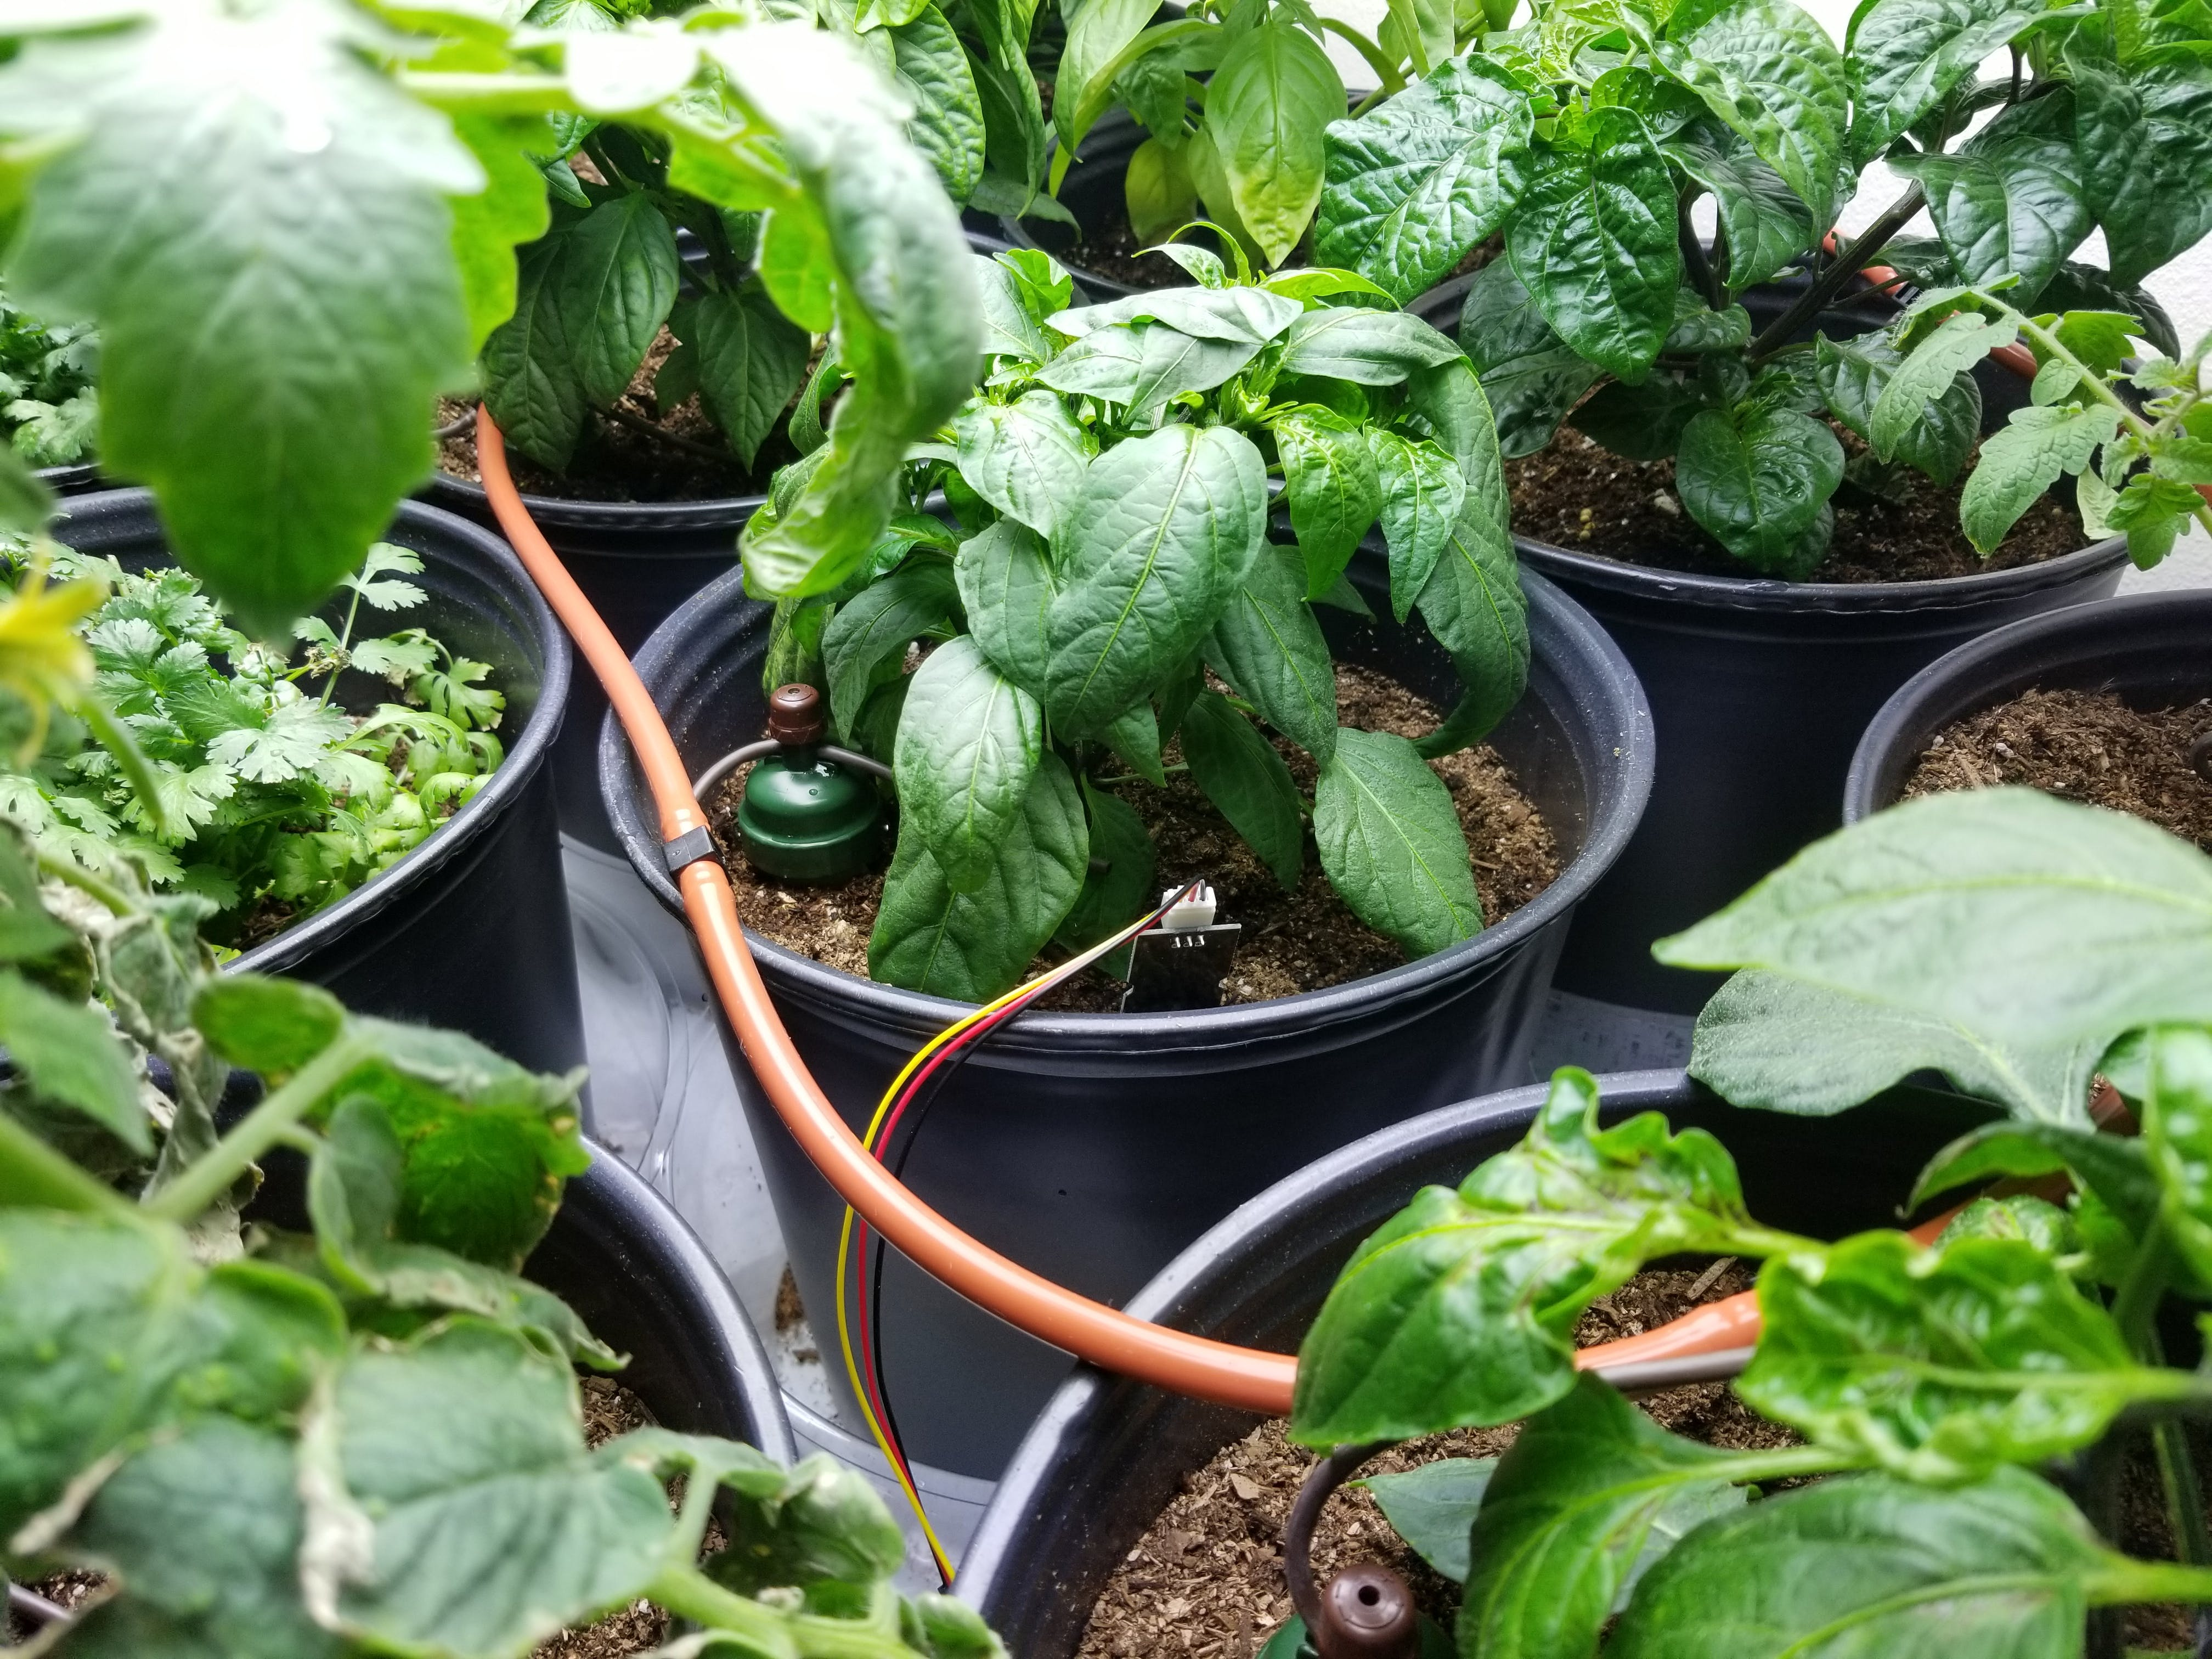 Plants are sending moisture information to arduino and being watered by the blumats.